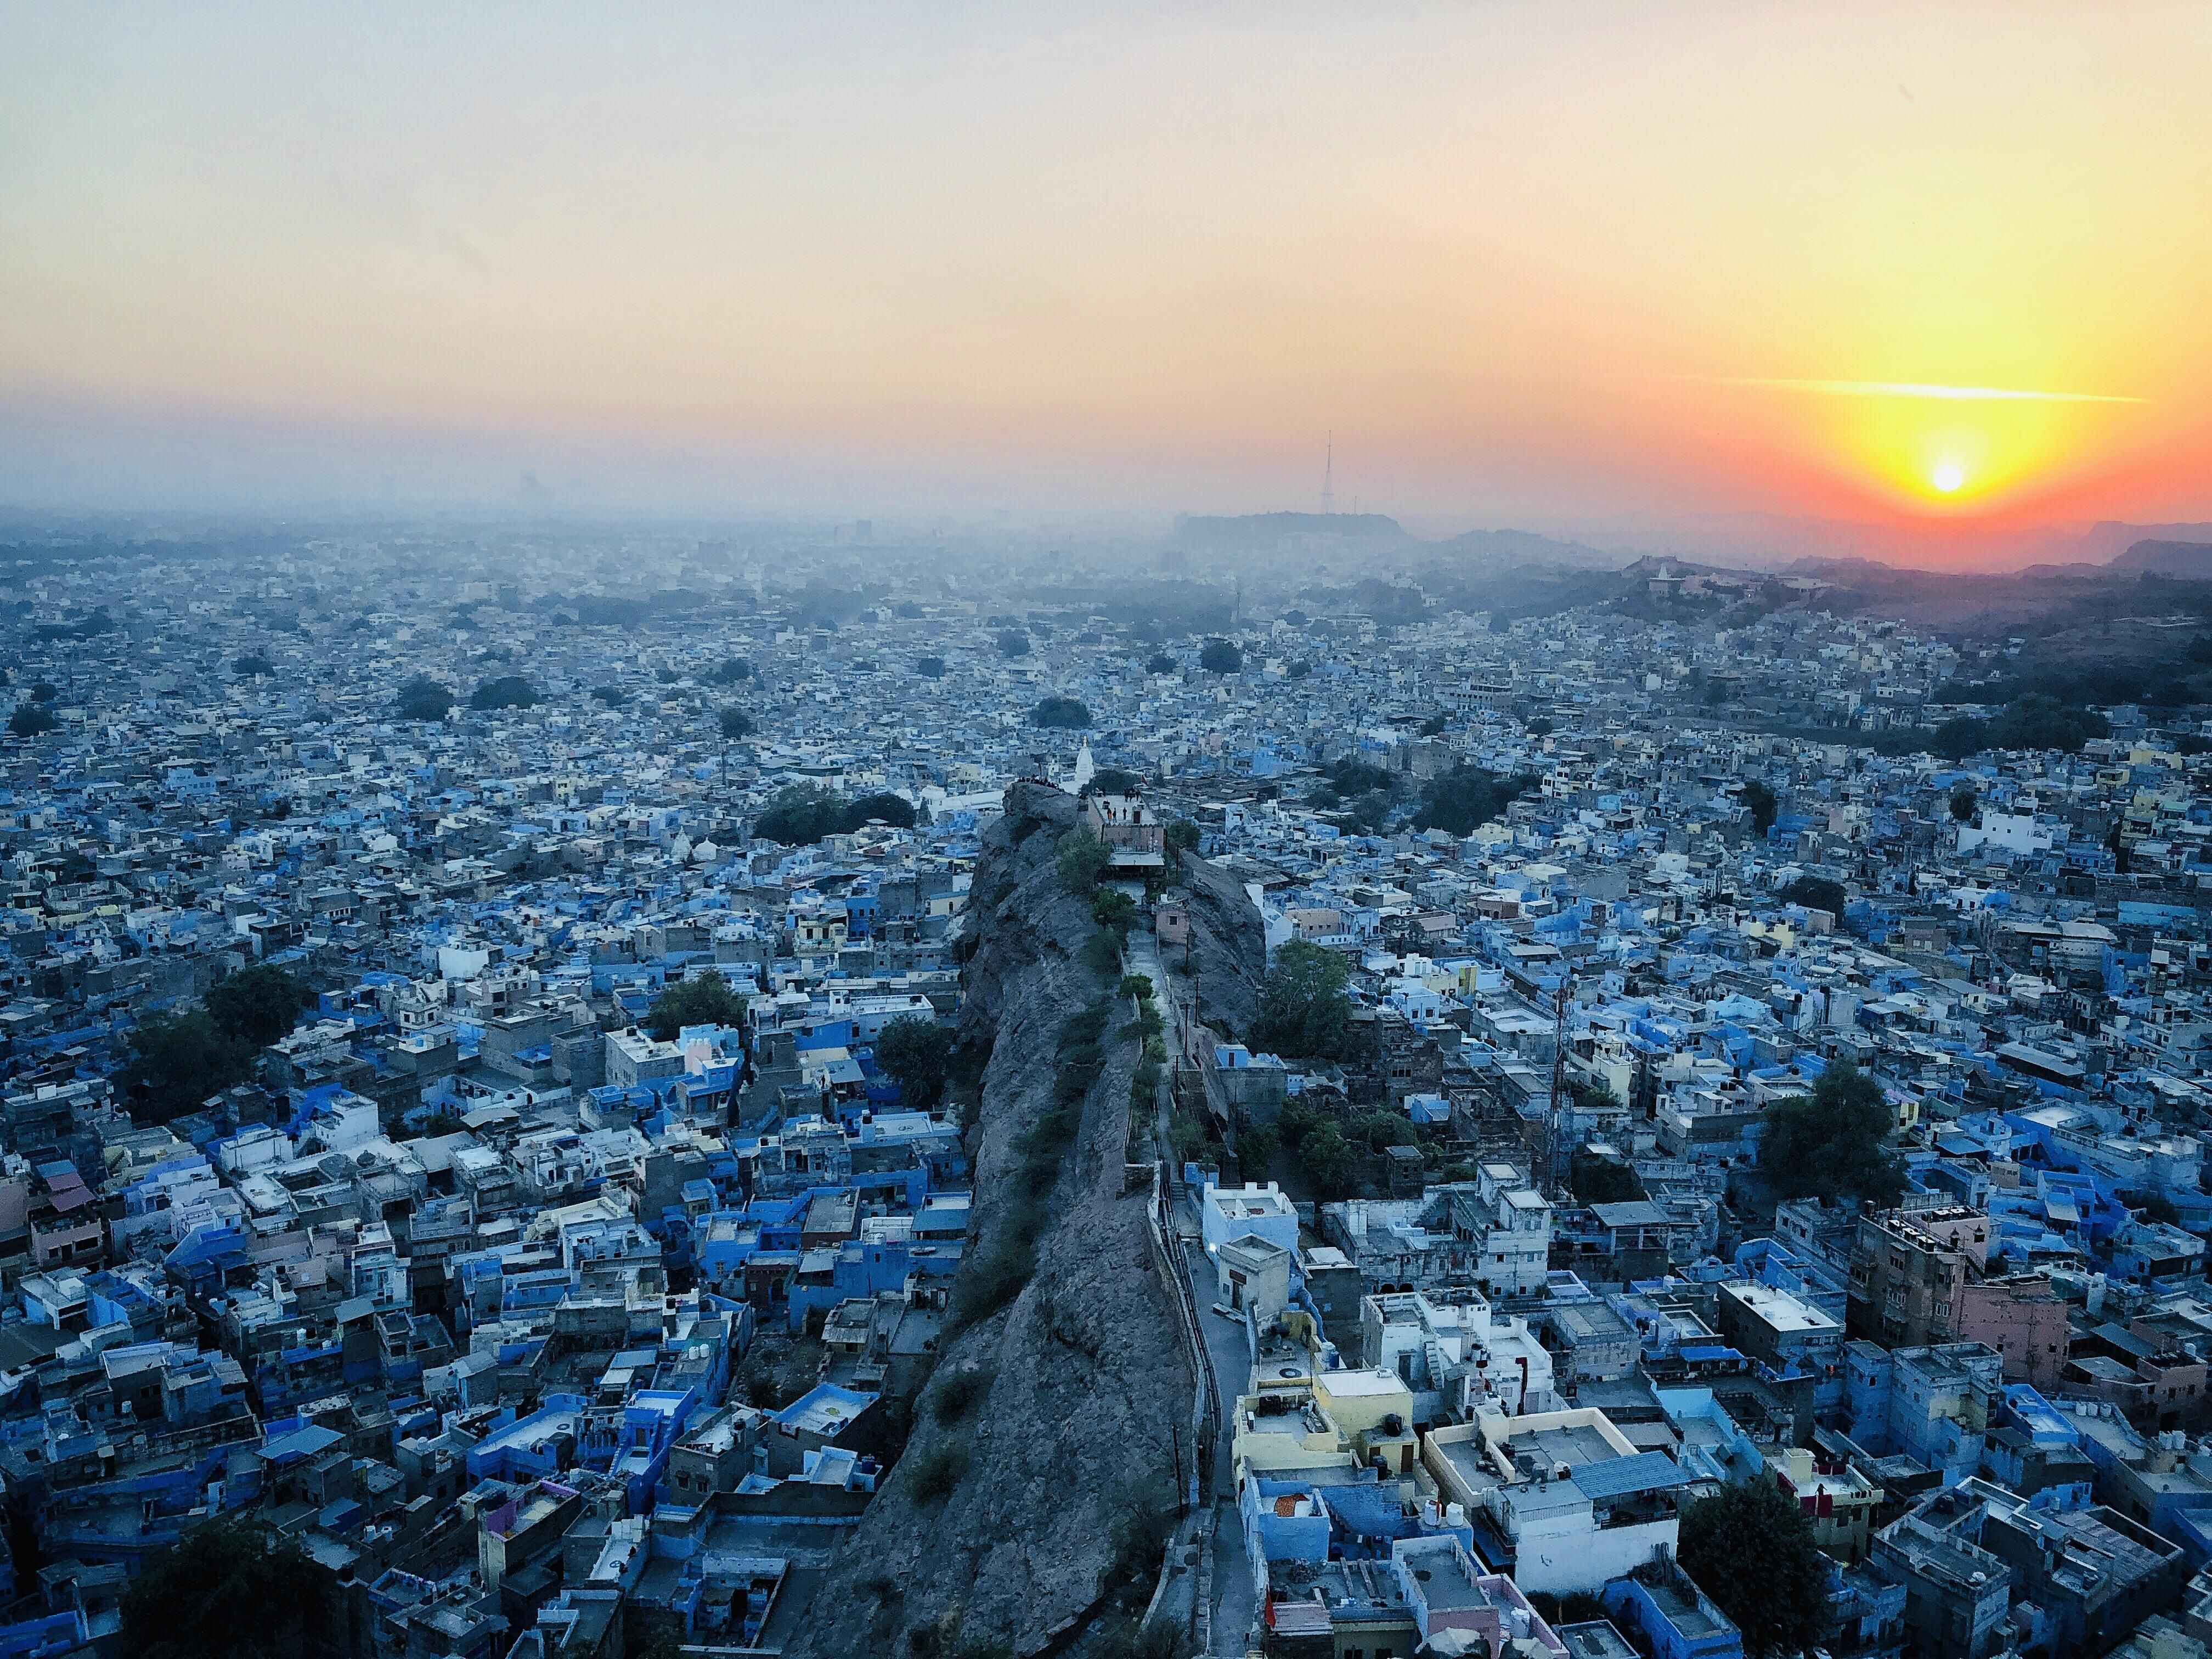 Theres a reason why they call it the Blue city. Jodhpur